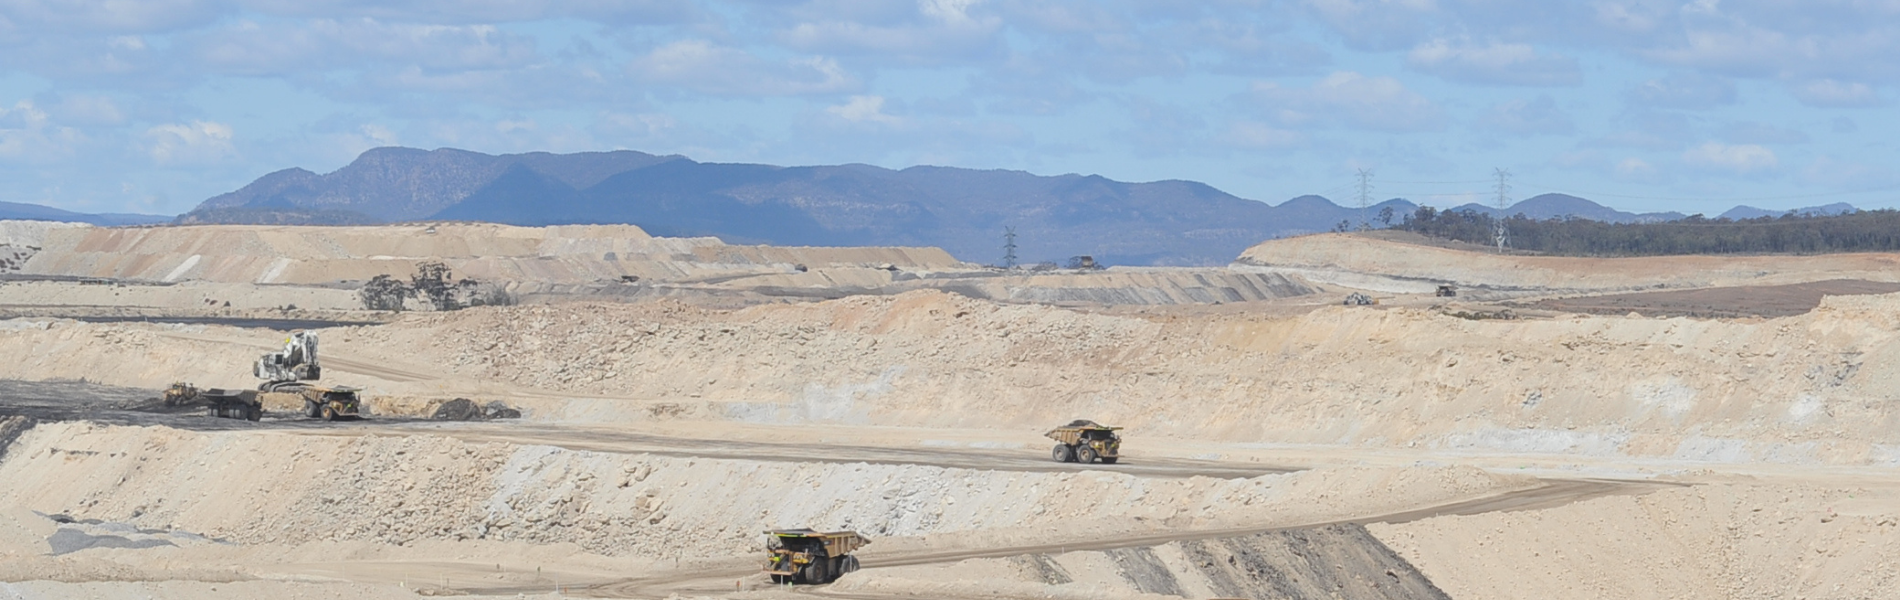 Community, government and mining join forces on air quality